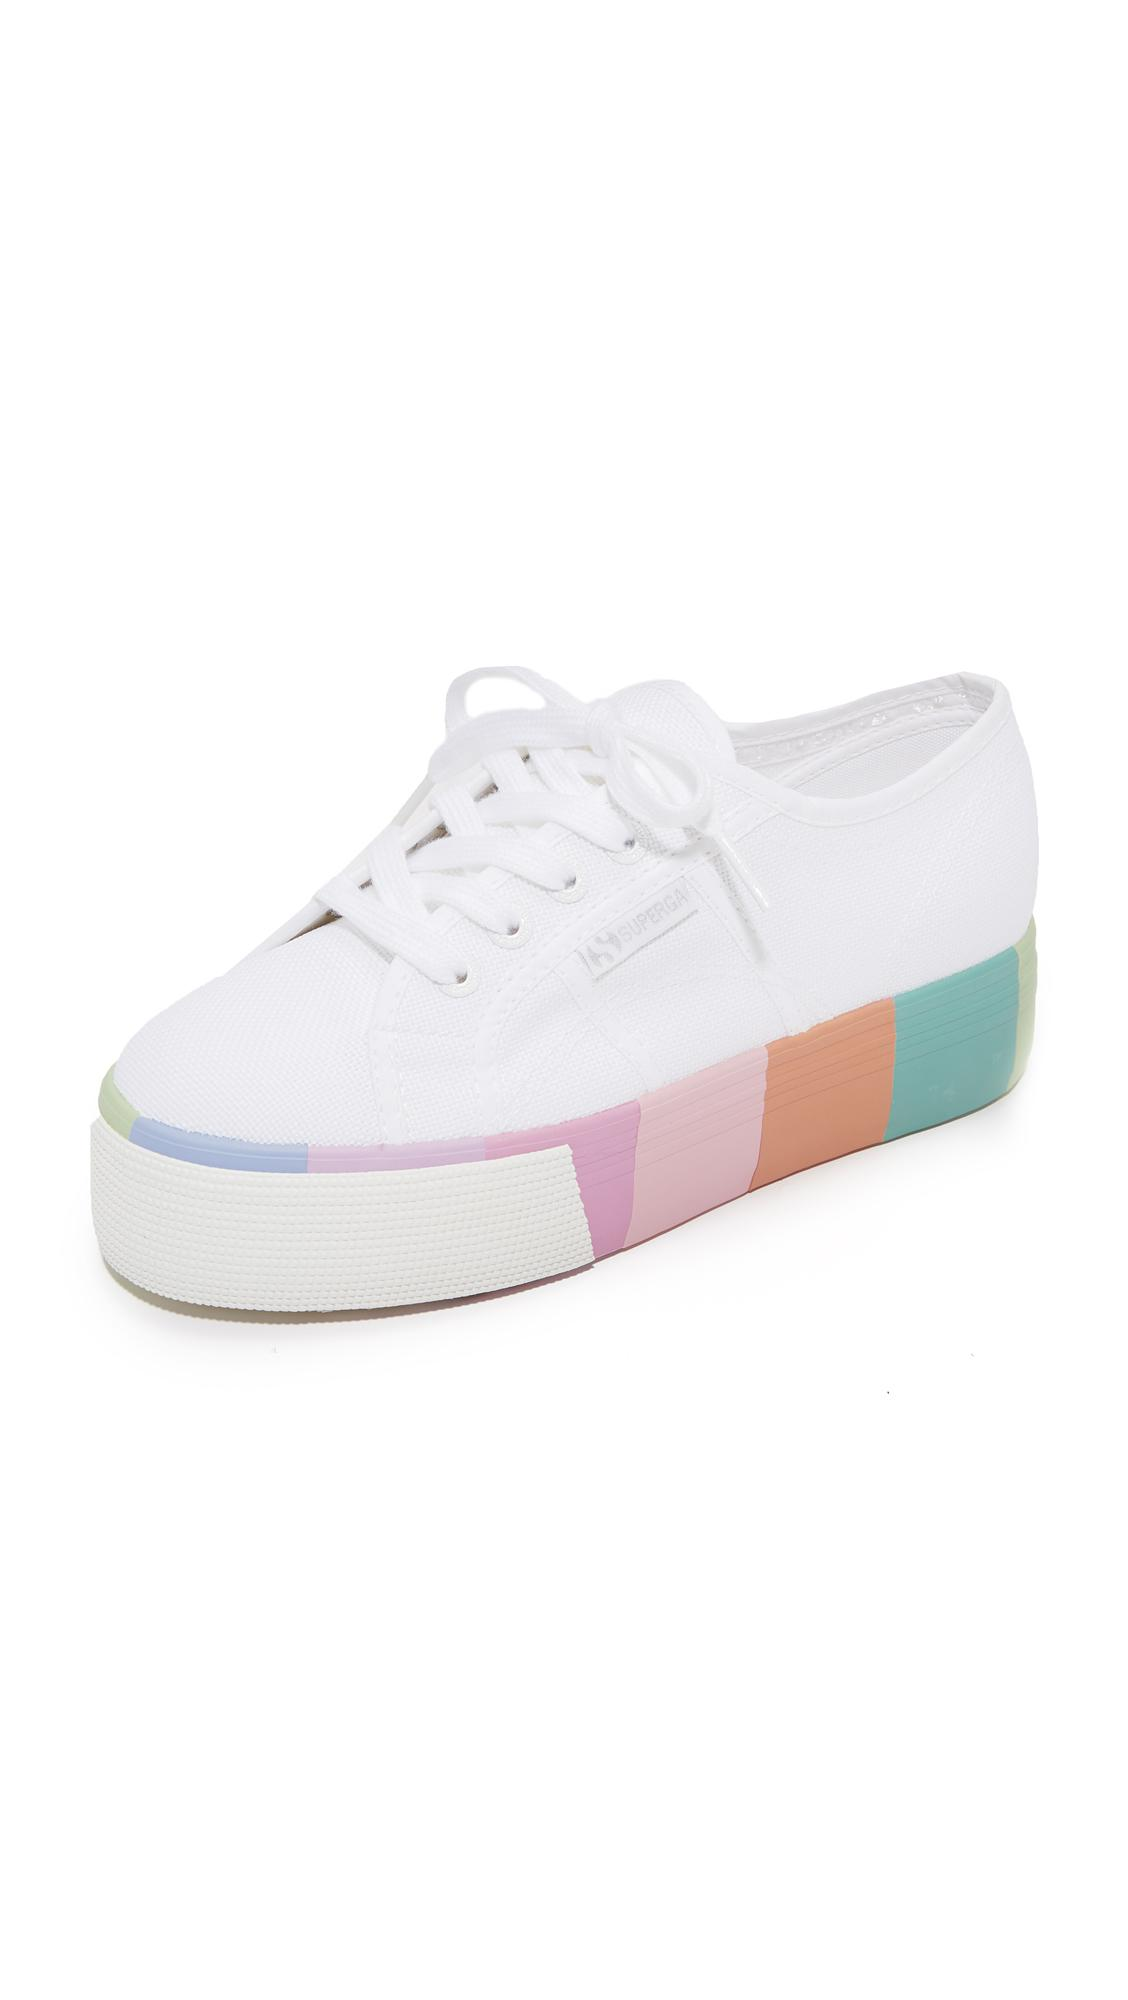 b1d28d4a458b Gallery. Previously sold at  Shopbop · Women s Platform Trainers